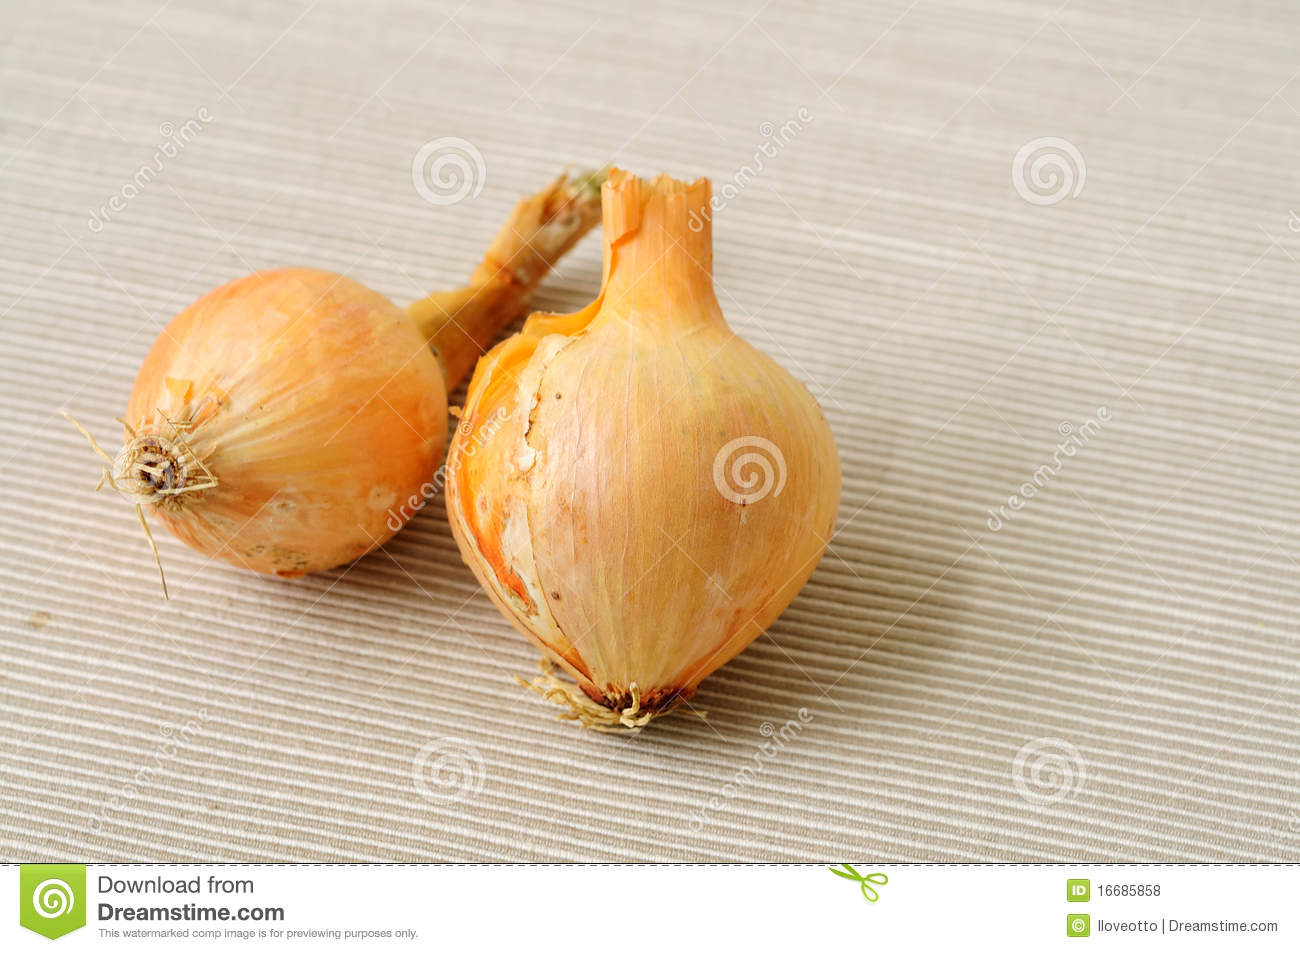 garlic vegetable royalty free stock photos image 16685858